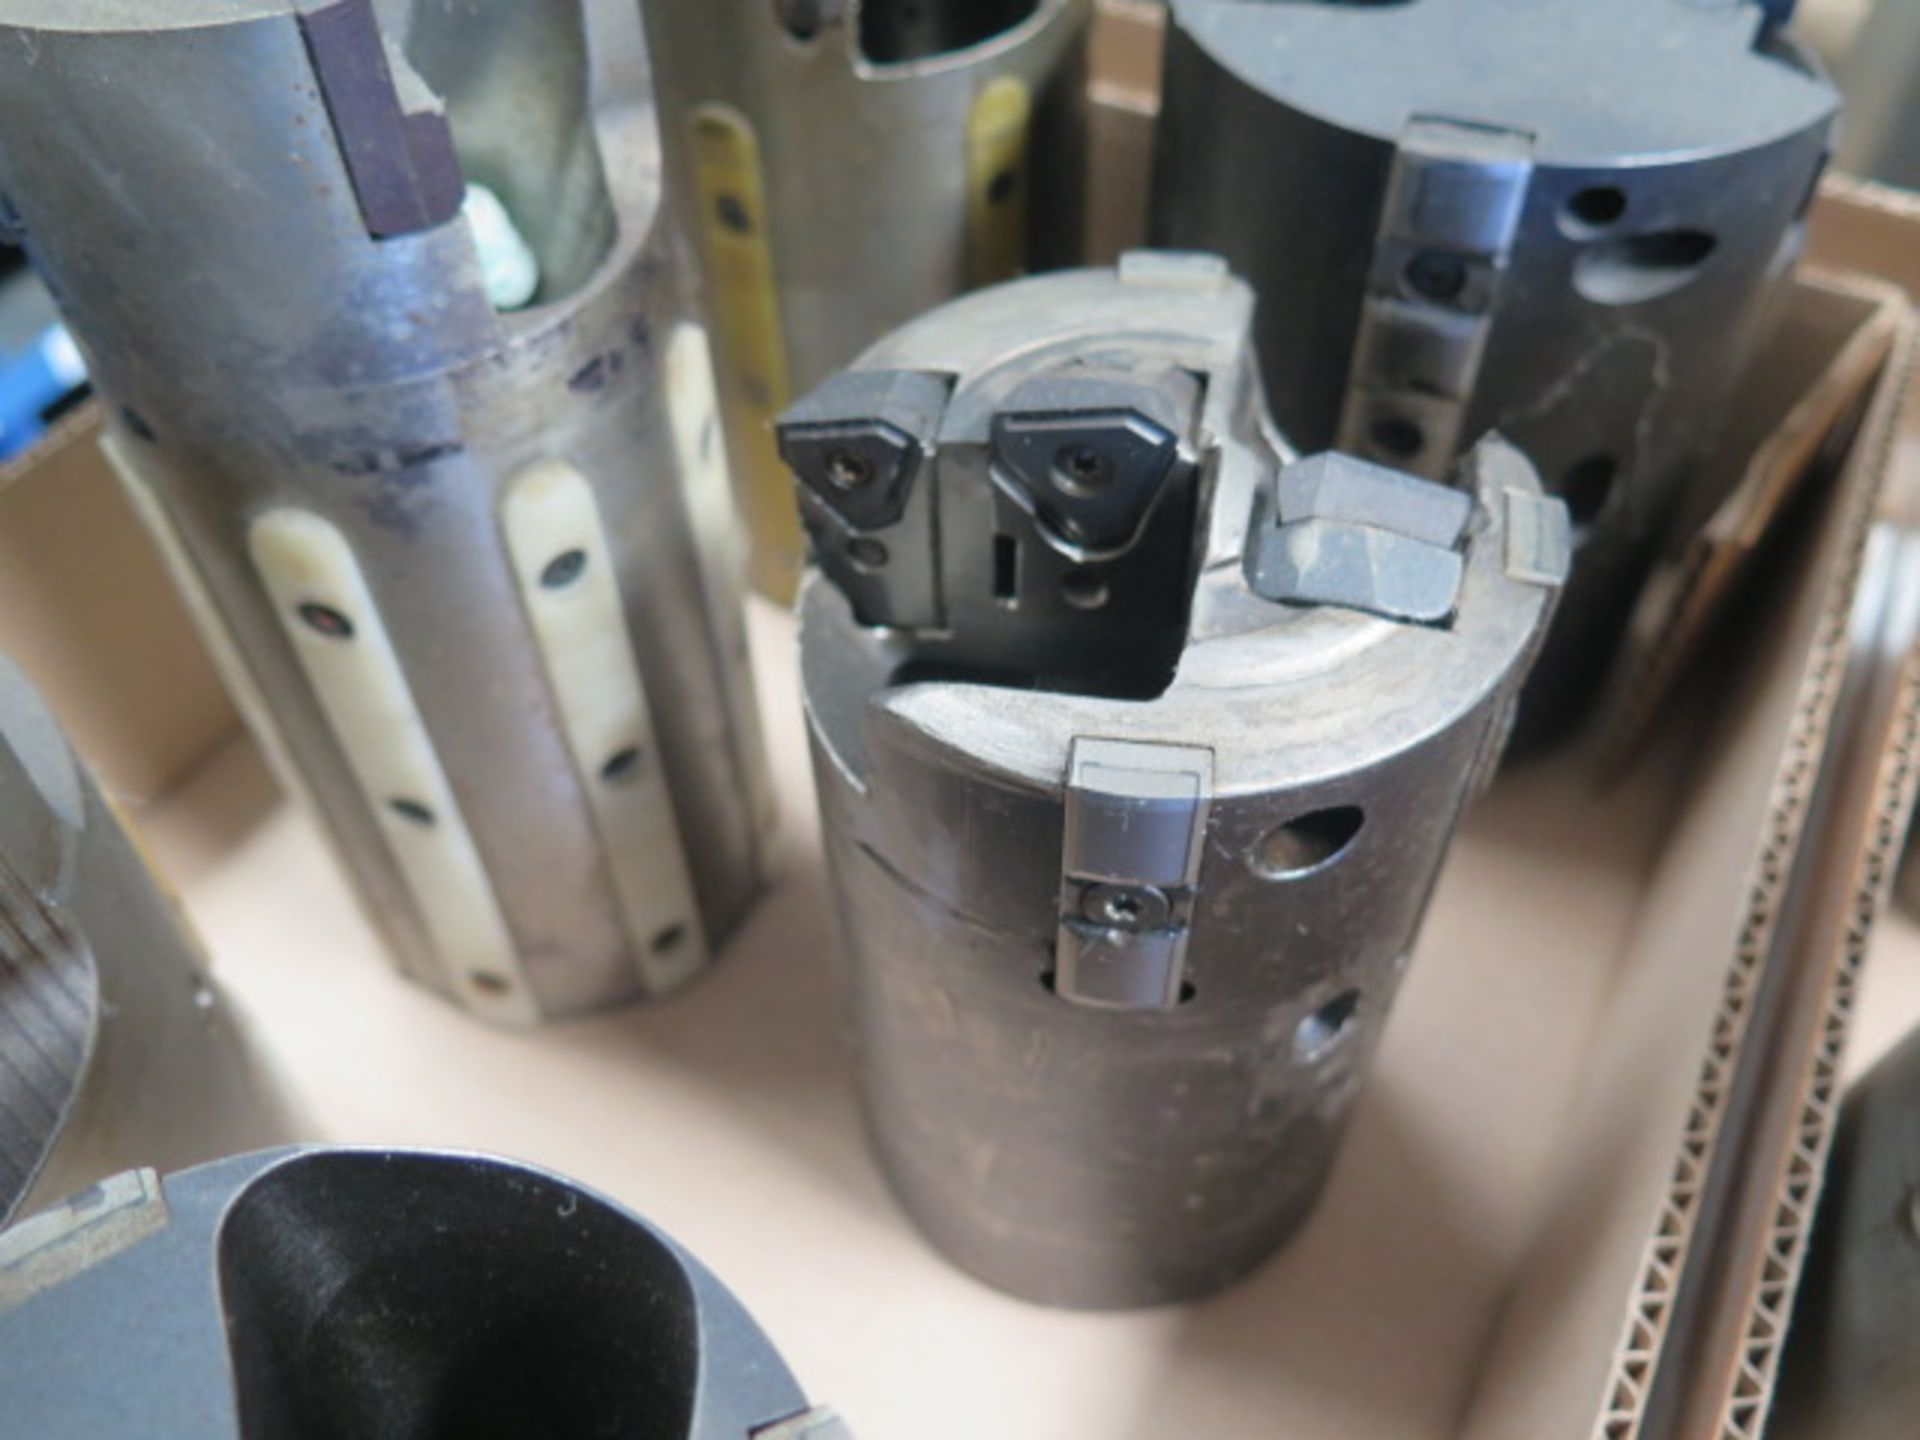 Large Diameter Insert Tube Drills (SOLD AS-IS - NO WARRANTY) - Image 4 of 7